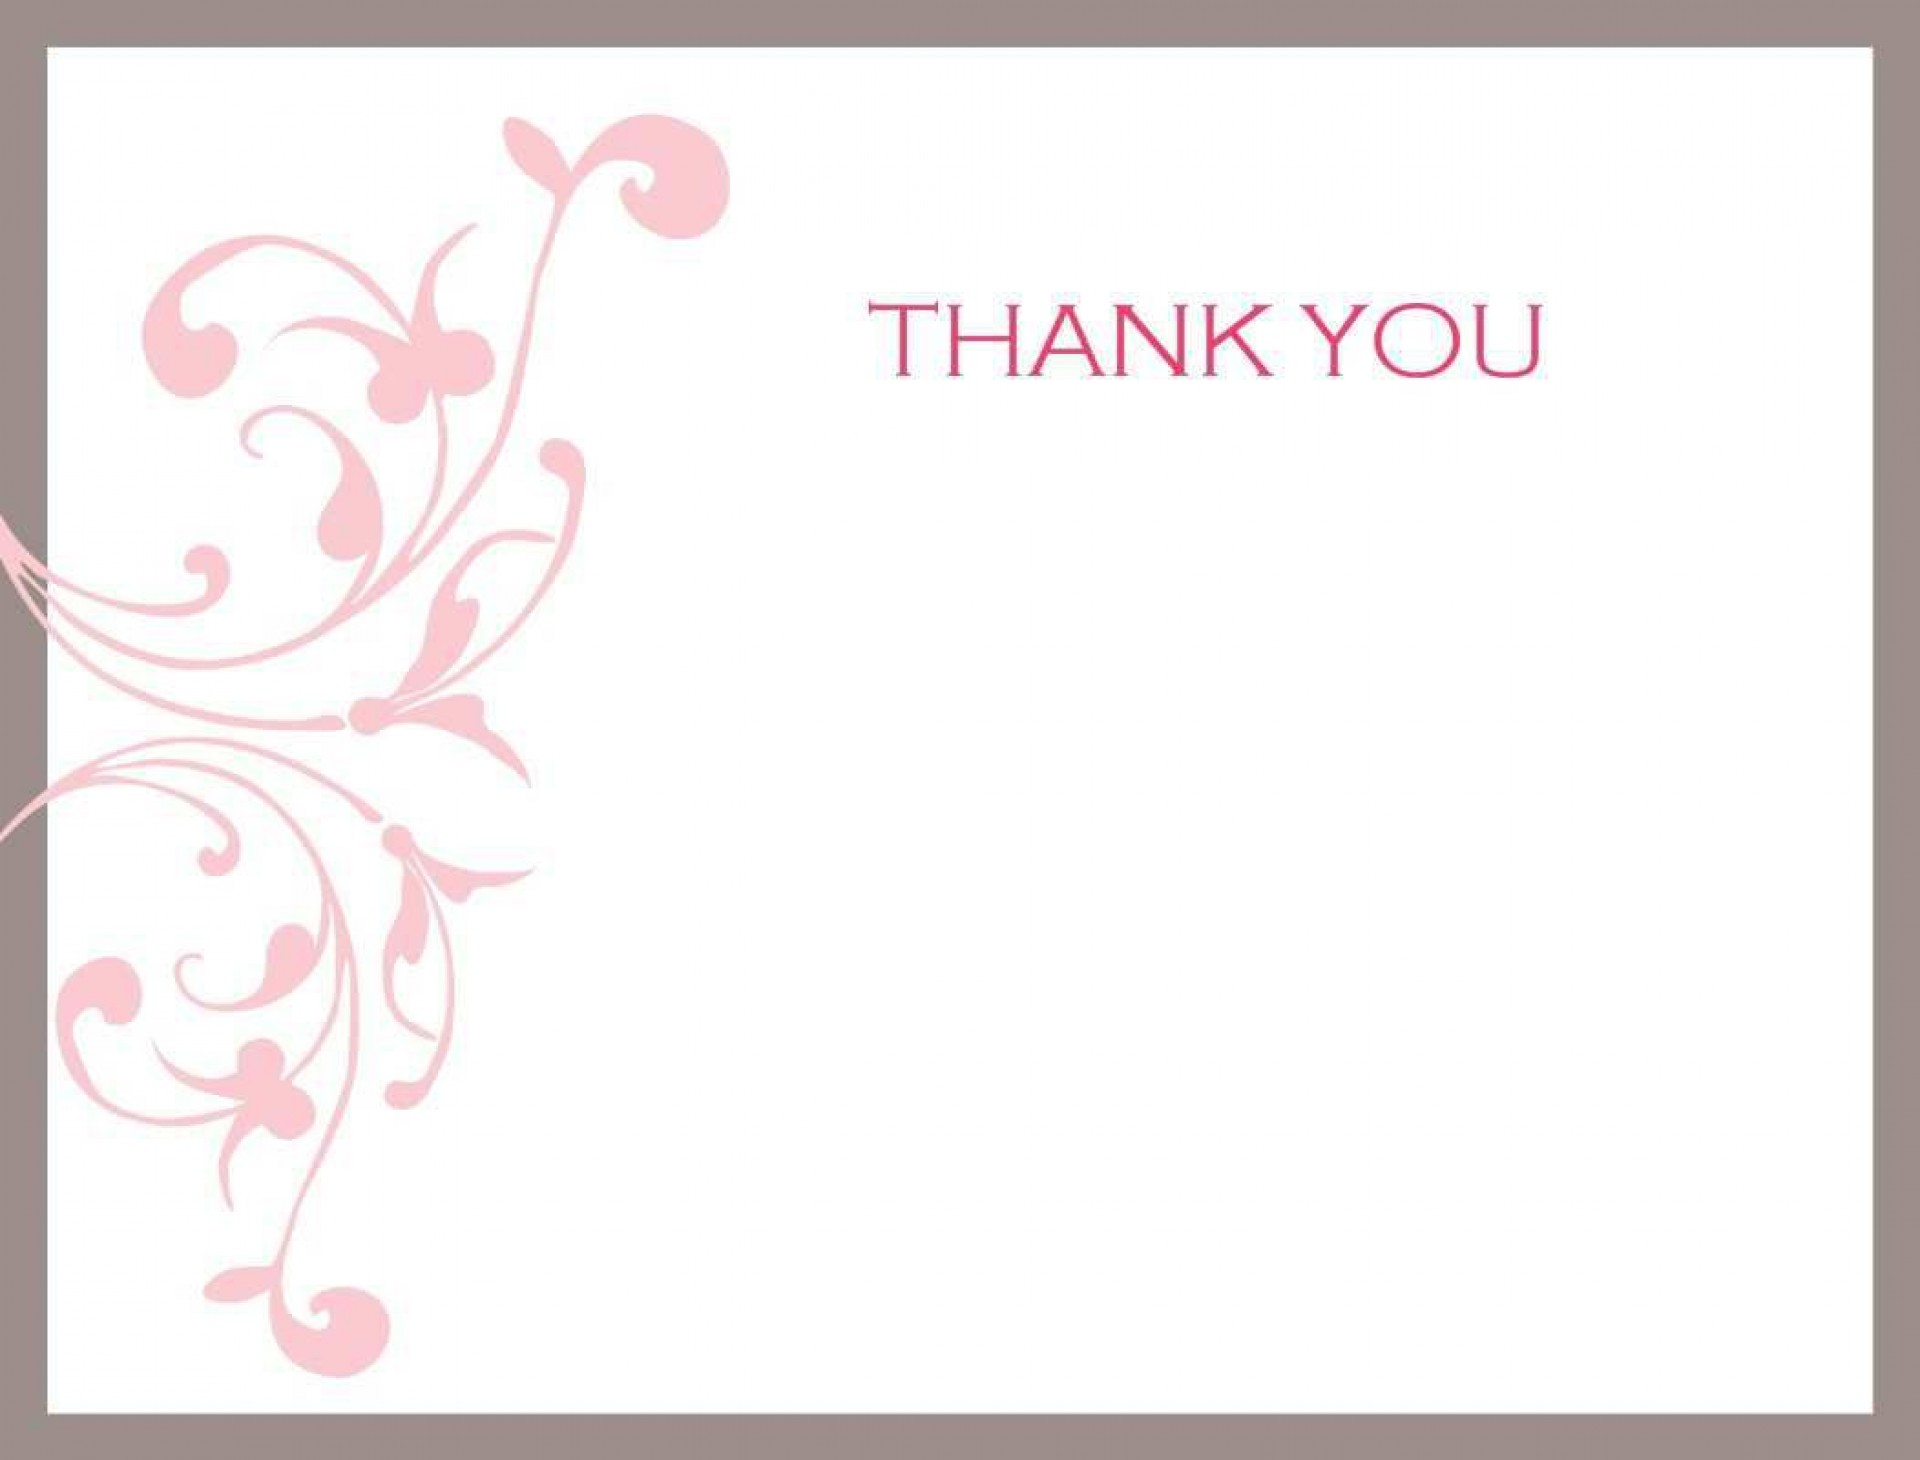 002 Fascinating Free Thank You Note Template Word High Definition  Card Download1920